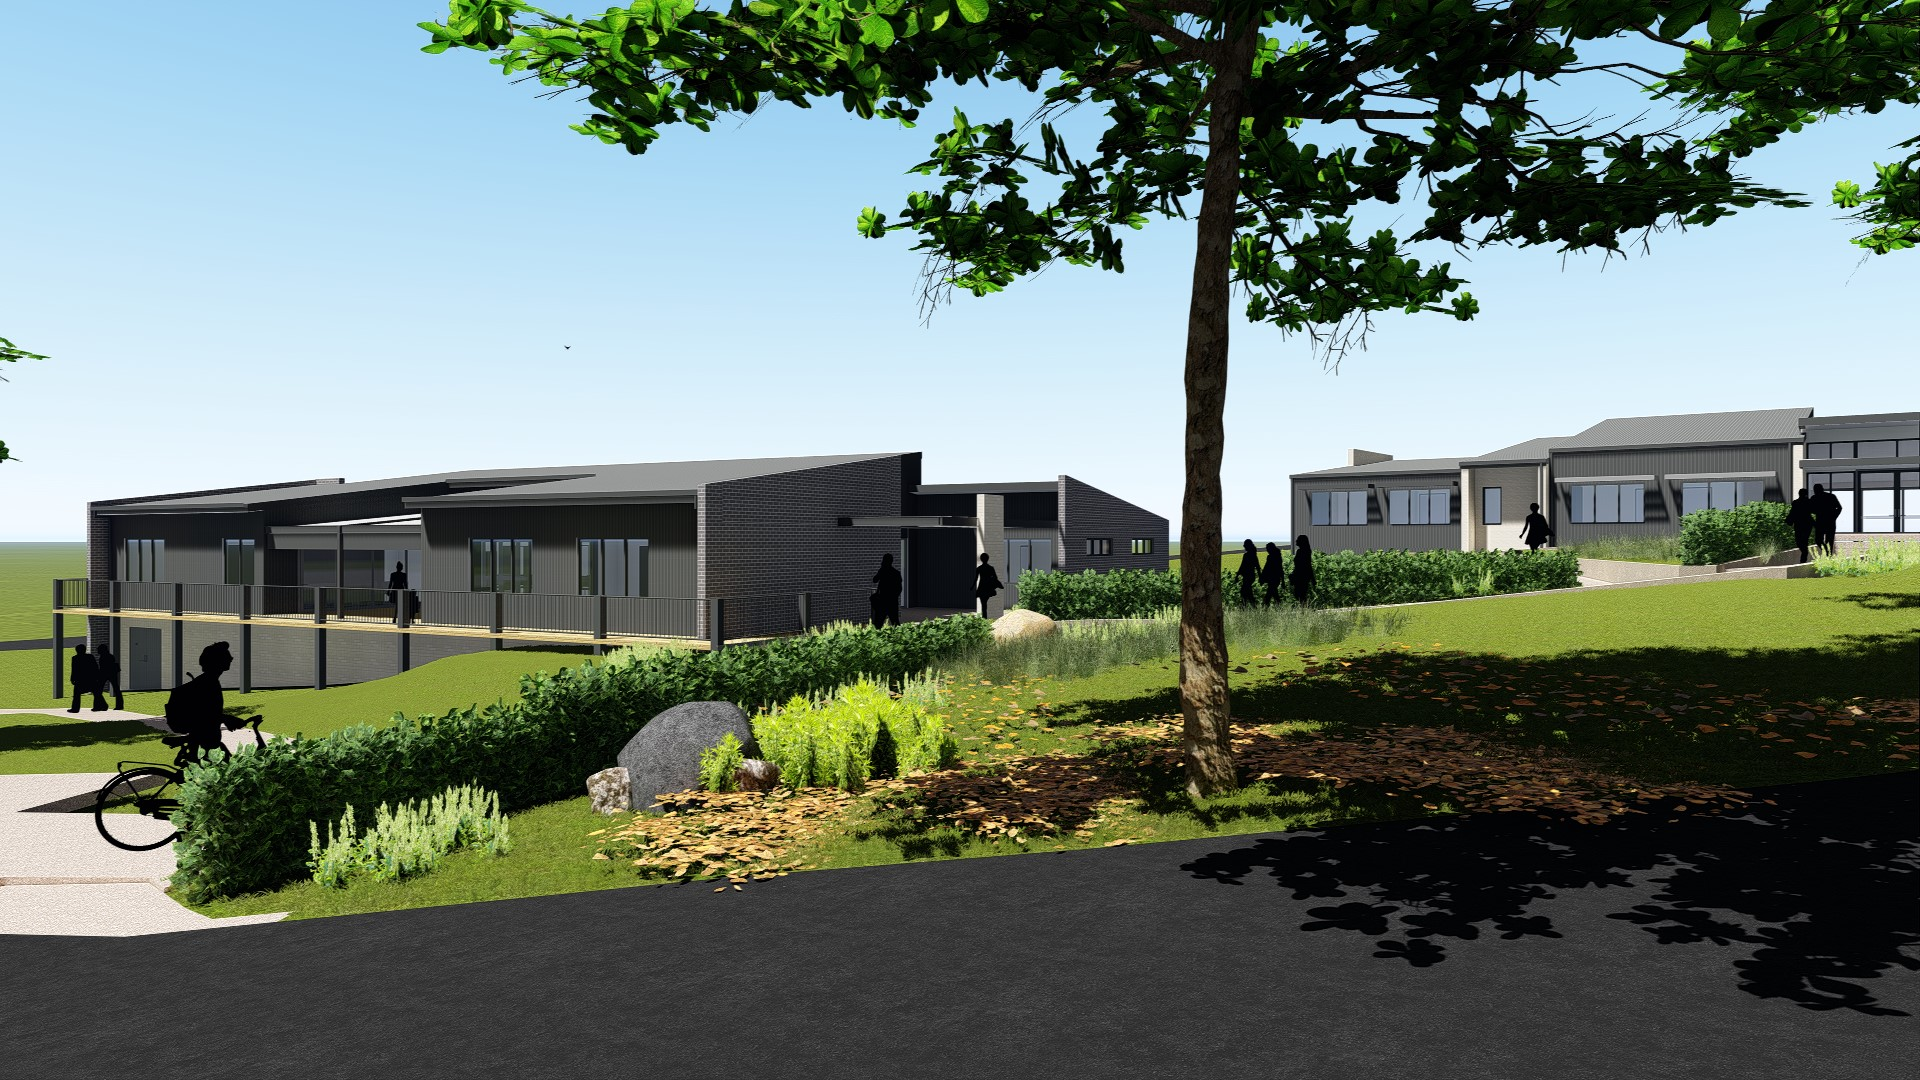 Bega Clinical Training Facility and Student Accommodation